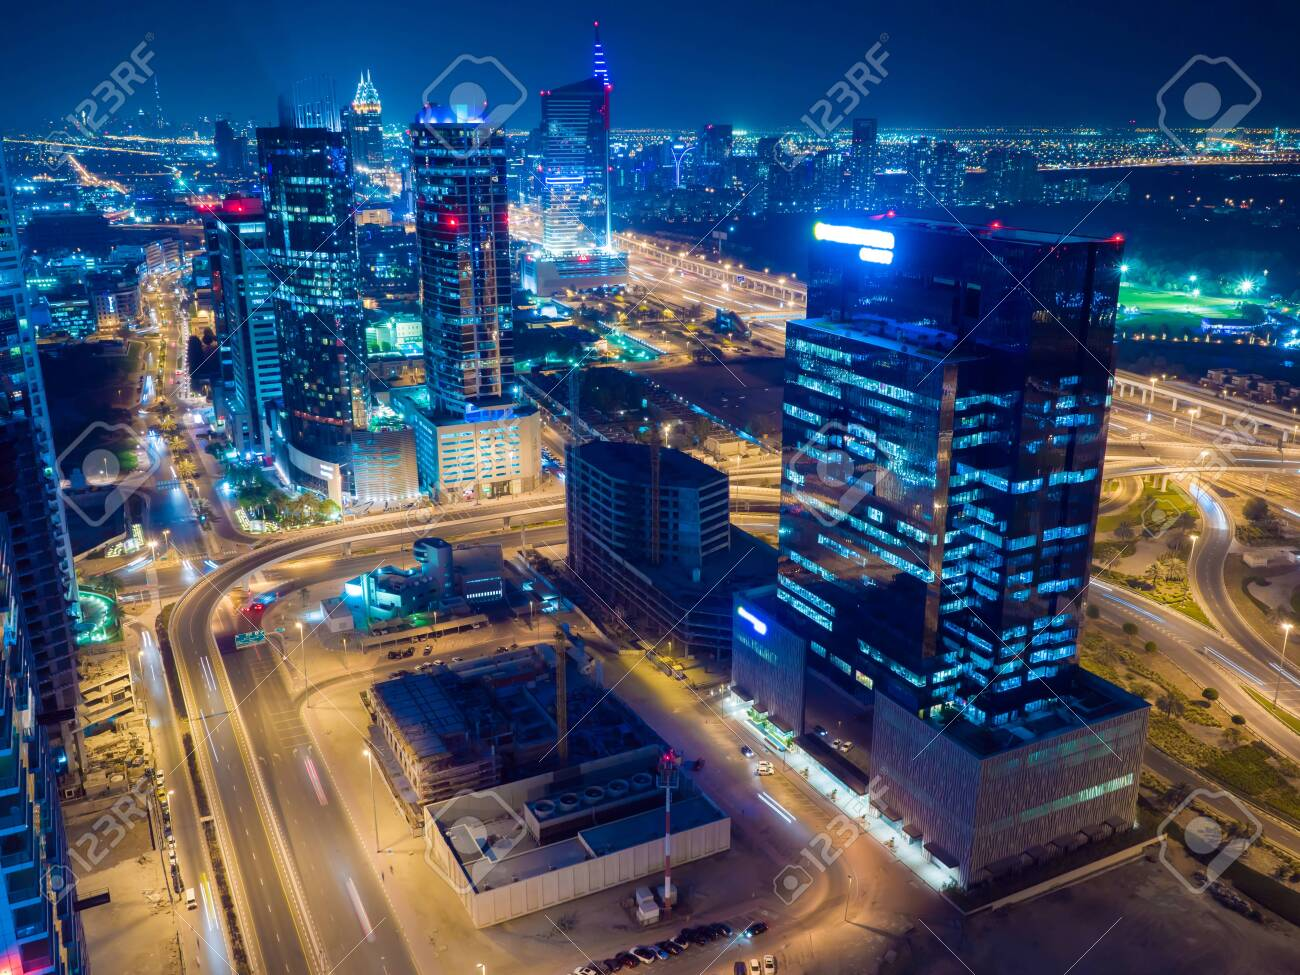 Panorama of the Dubai area with a road junction and traffic at night. - 123849942